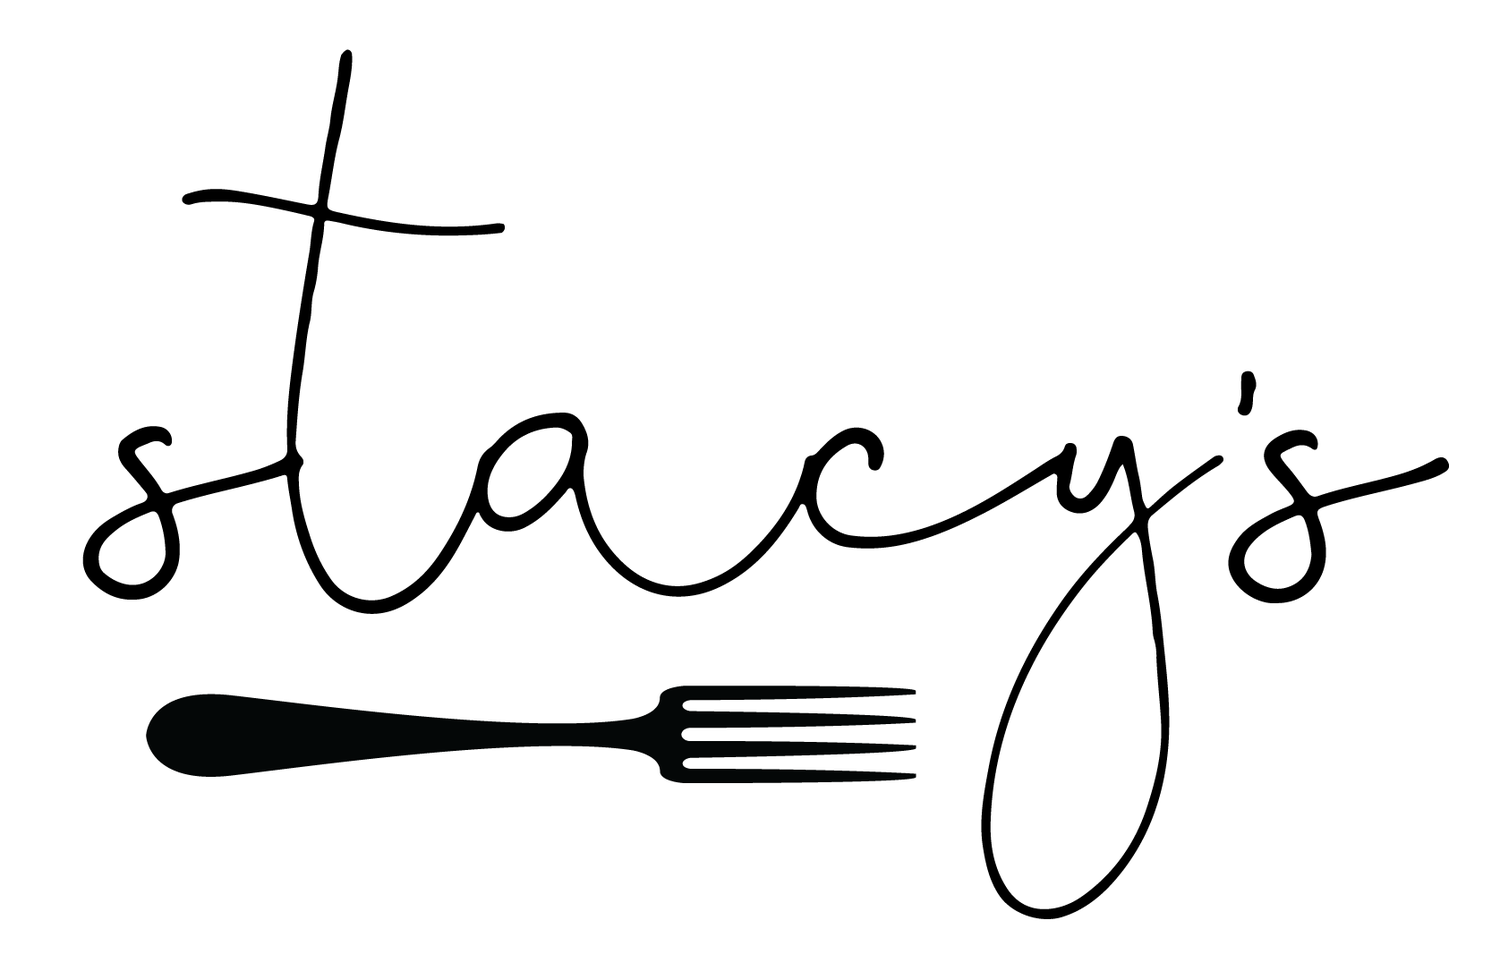 Stacy's Fork